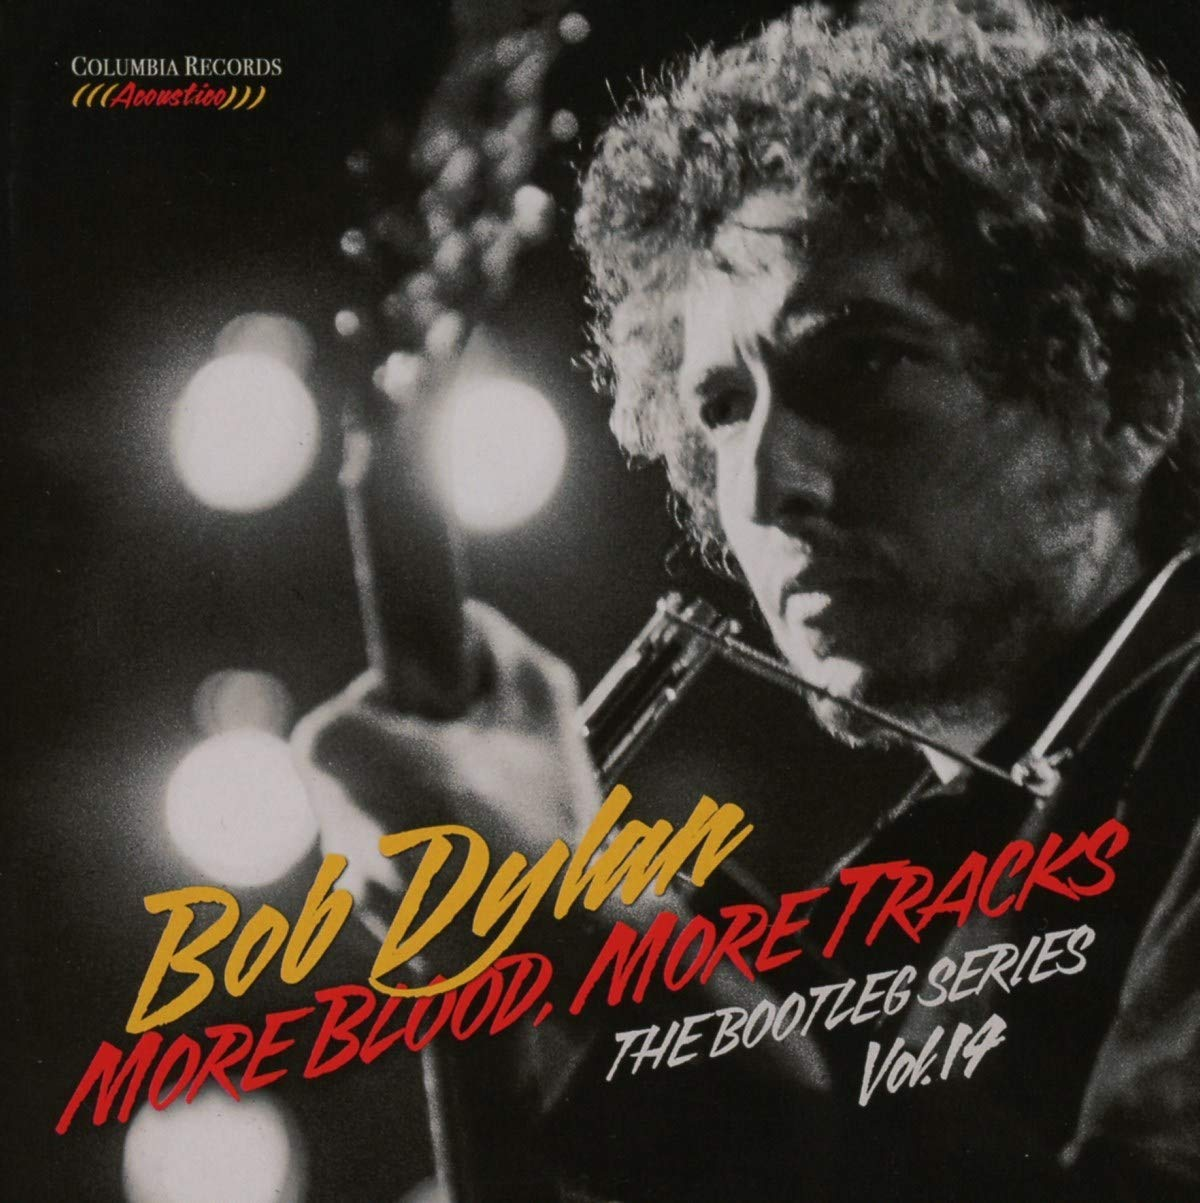 More Blood, More Tracks: The Bootleg Series Vol. 14 thumbnail